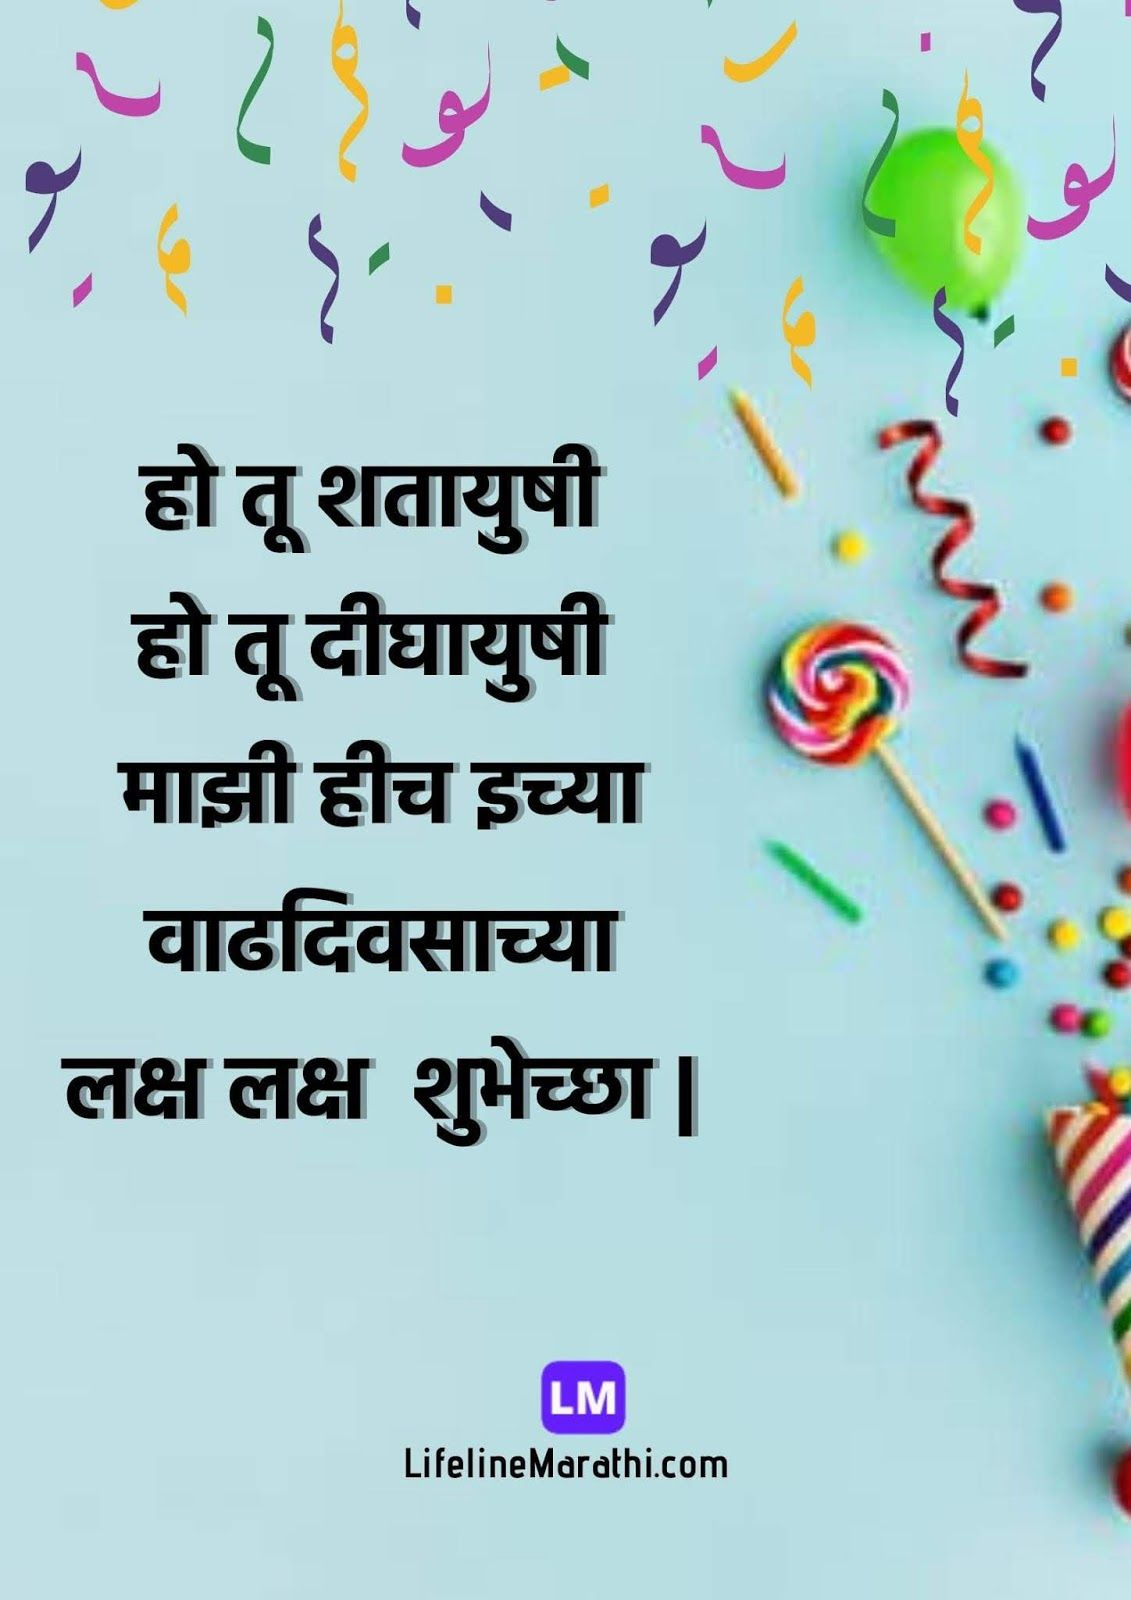 Birthday Wishes In Marathi With Image In 2020 Birthday Wishes For Friend Birthday Wishes For Her Birthday Wishes For Daughter